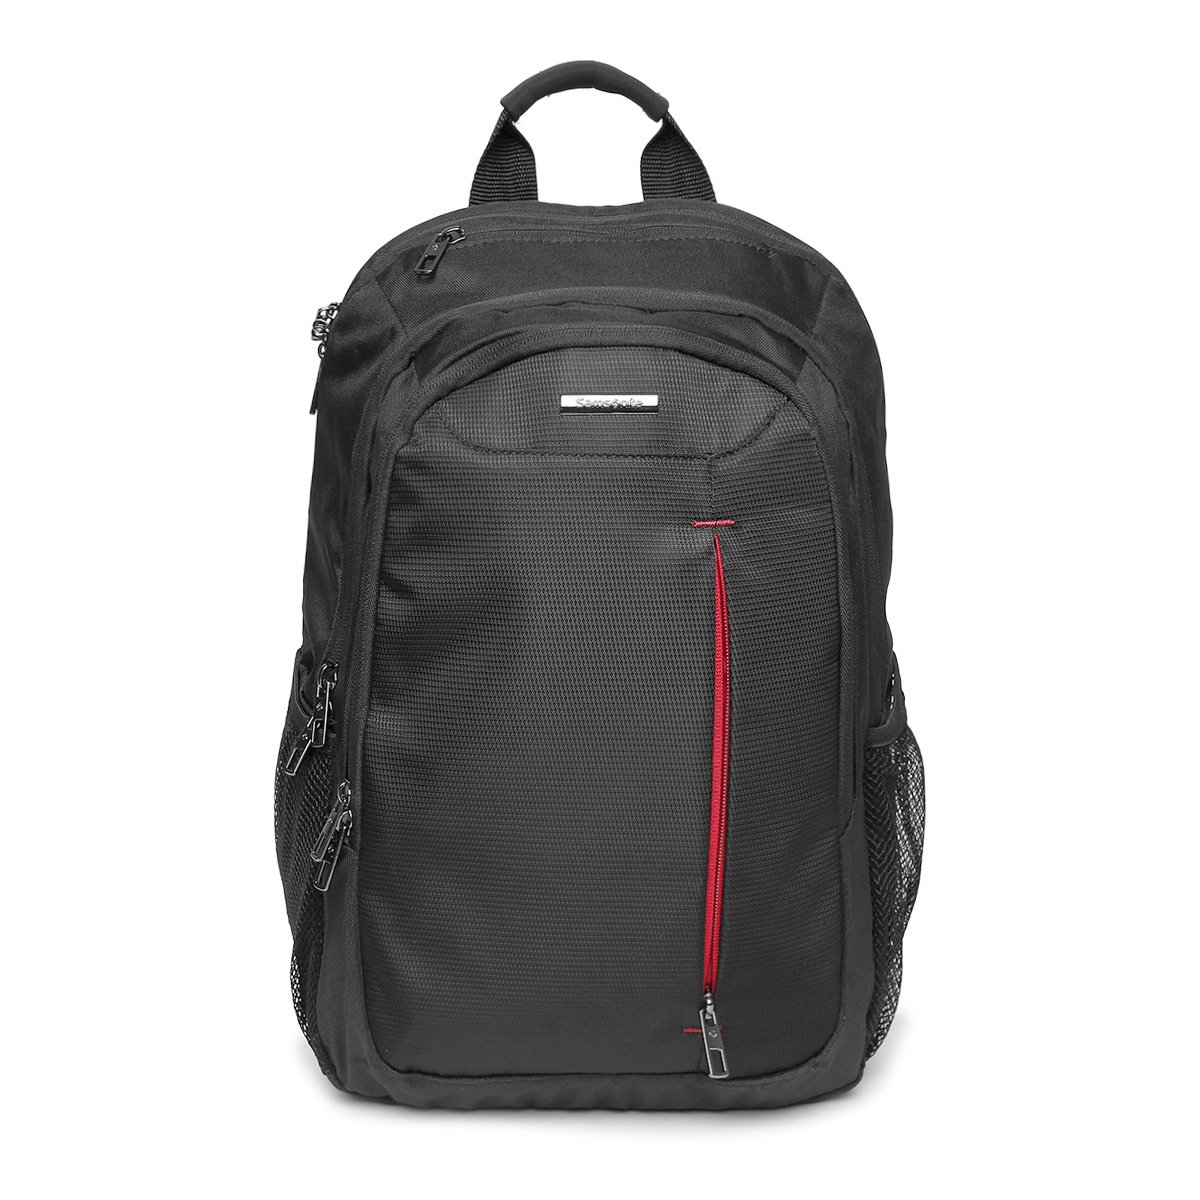 Mochila Samsonite para Notebook Guard IT Preto - 2